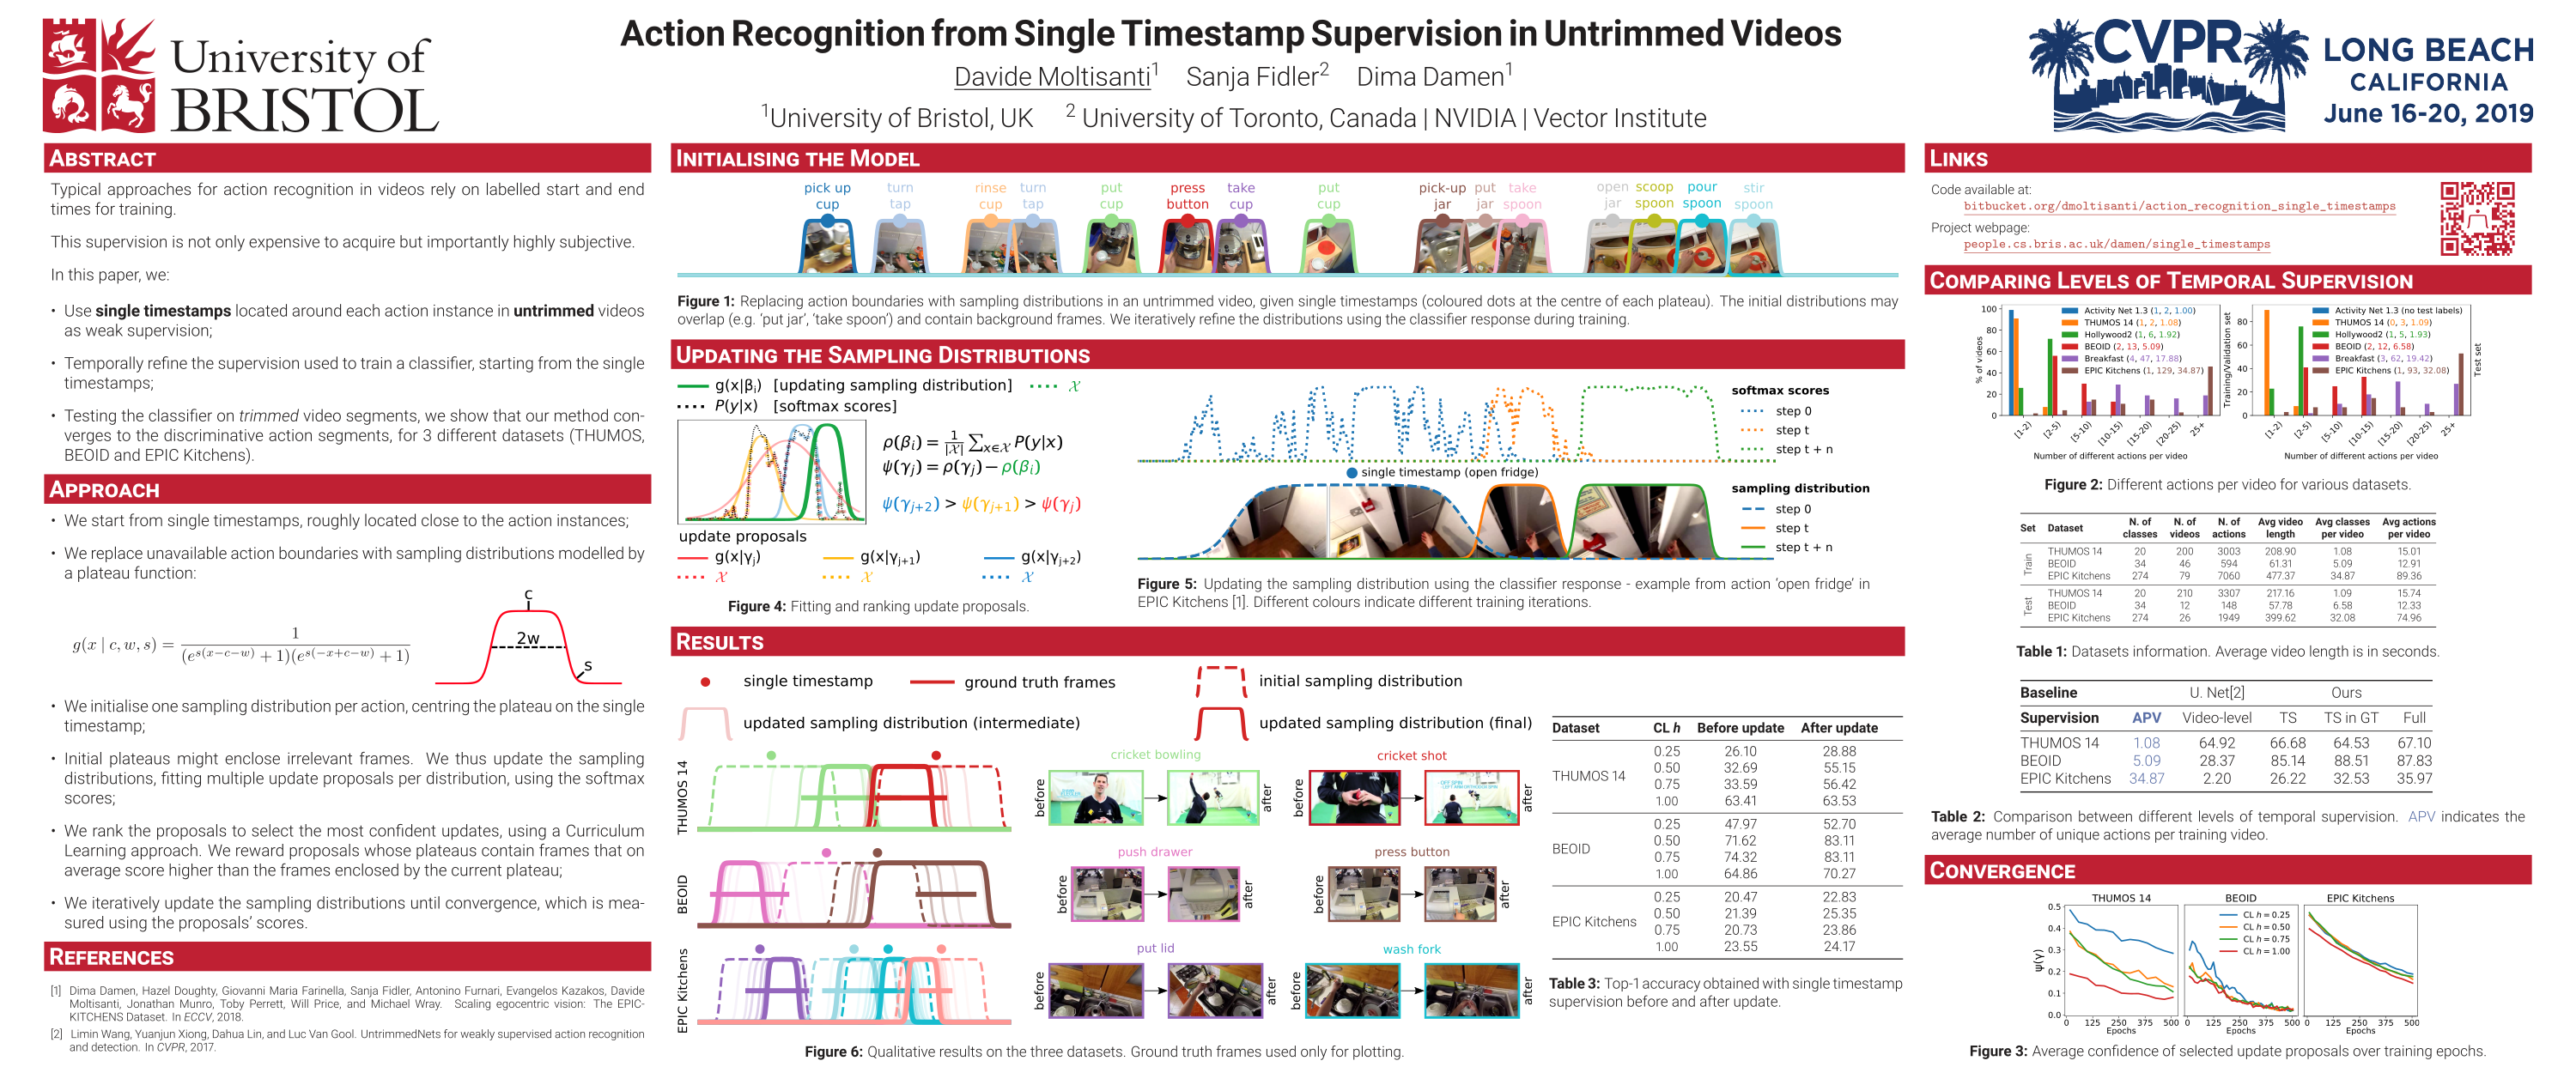 Action Recognition from Single Timestamp Supervision in